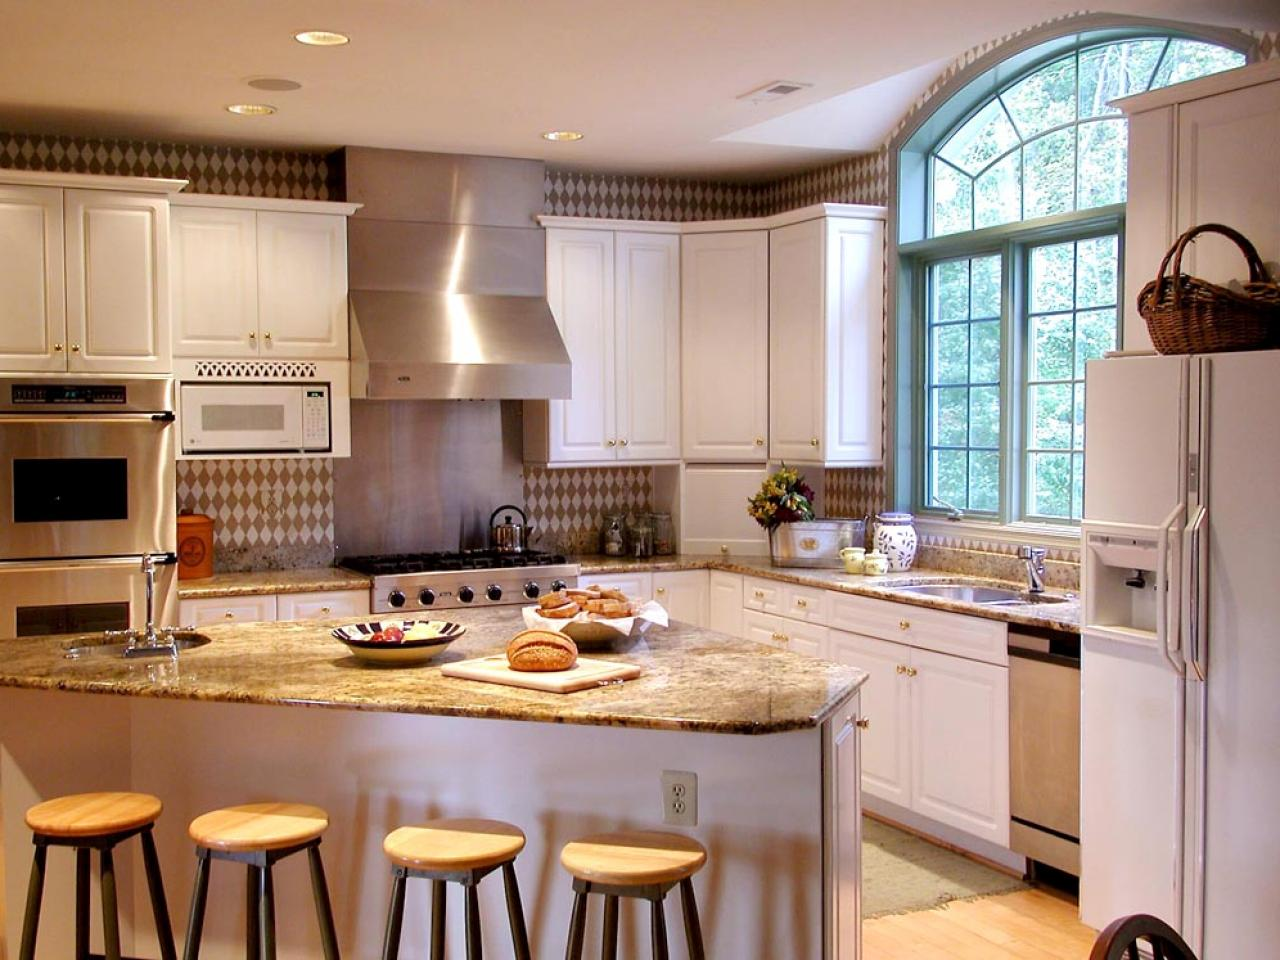 how to get this look - Transitional Kitchen Design